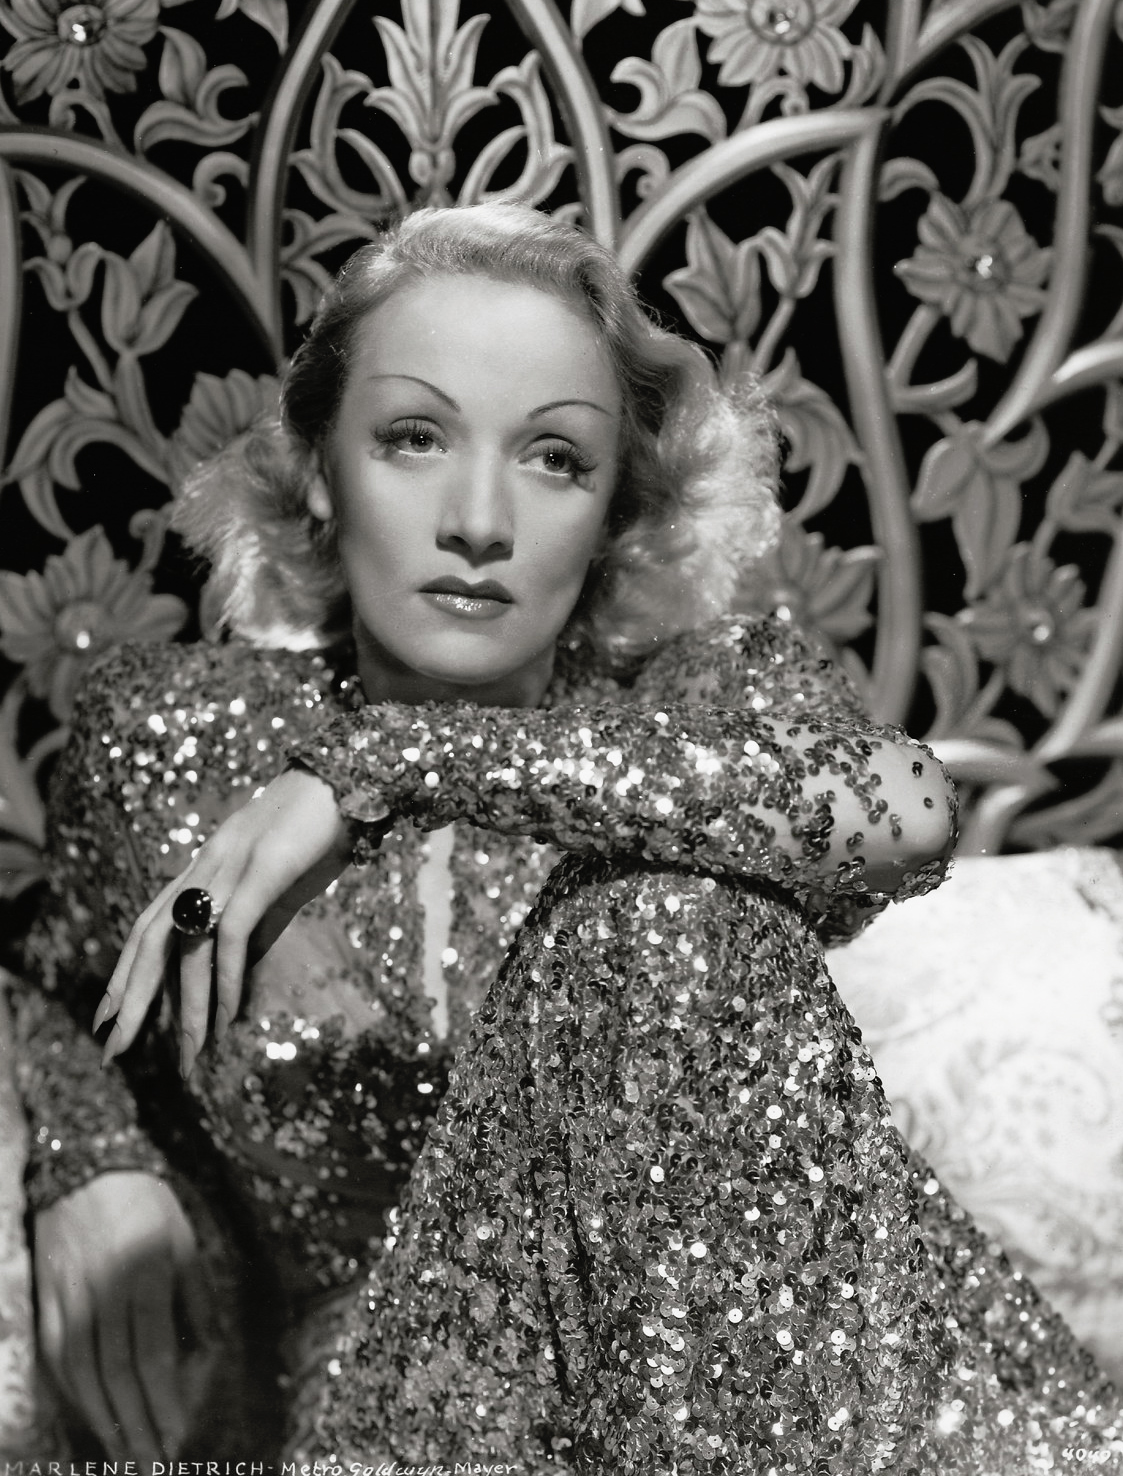 Marlene Dietrich Annex2: It's The Pictures That Got Small ...: THE SATURDAY GLAMOUR 15